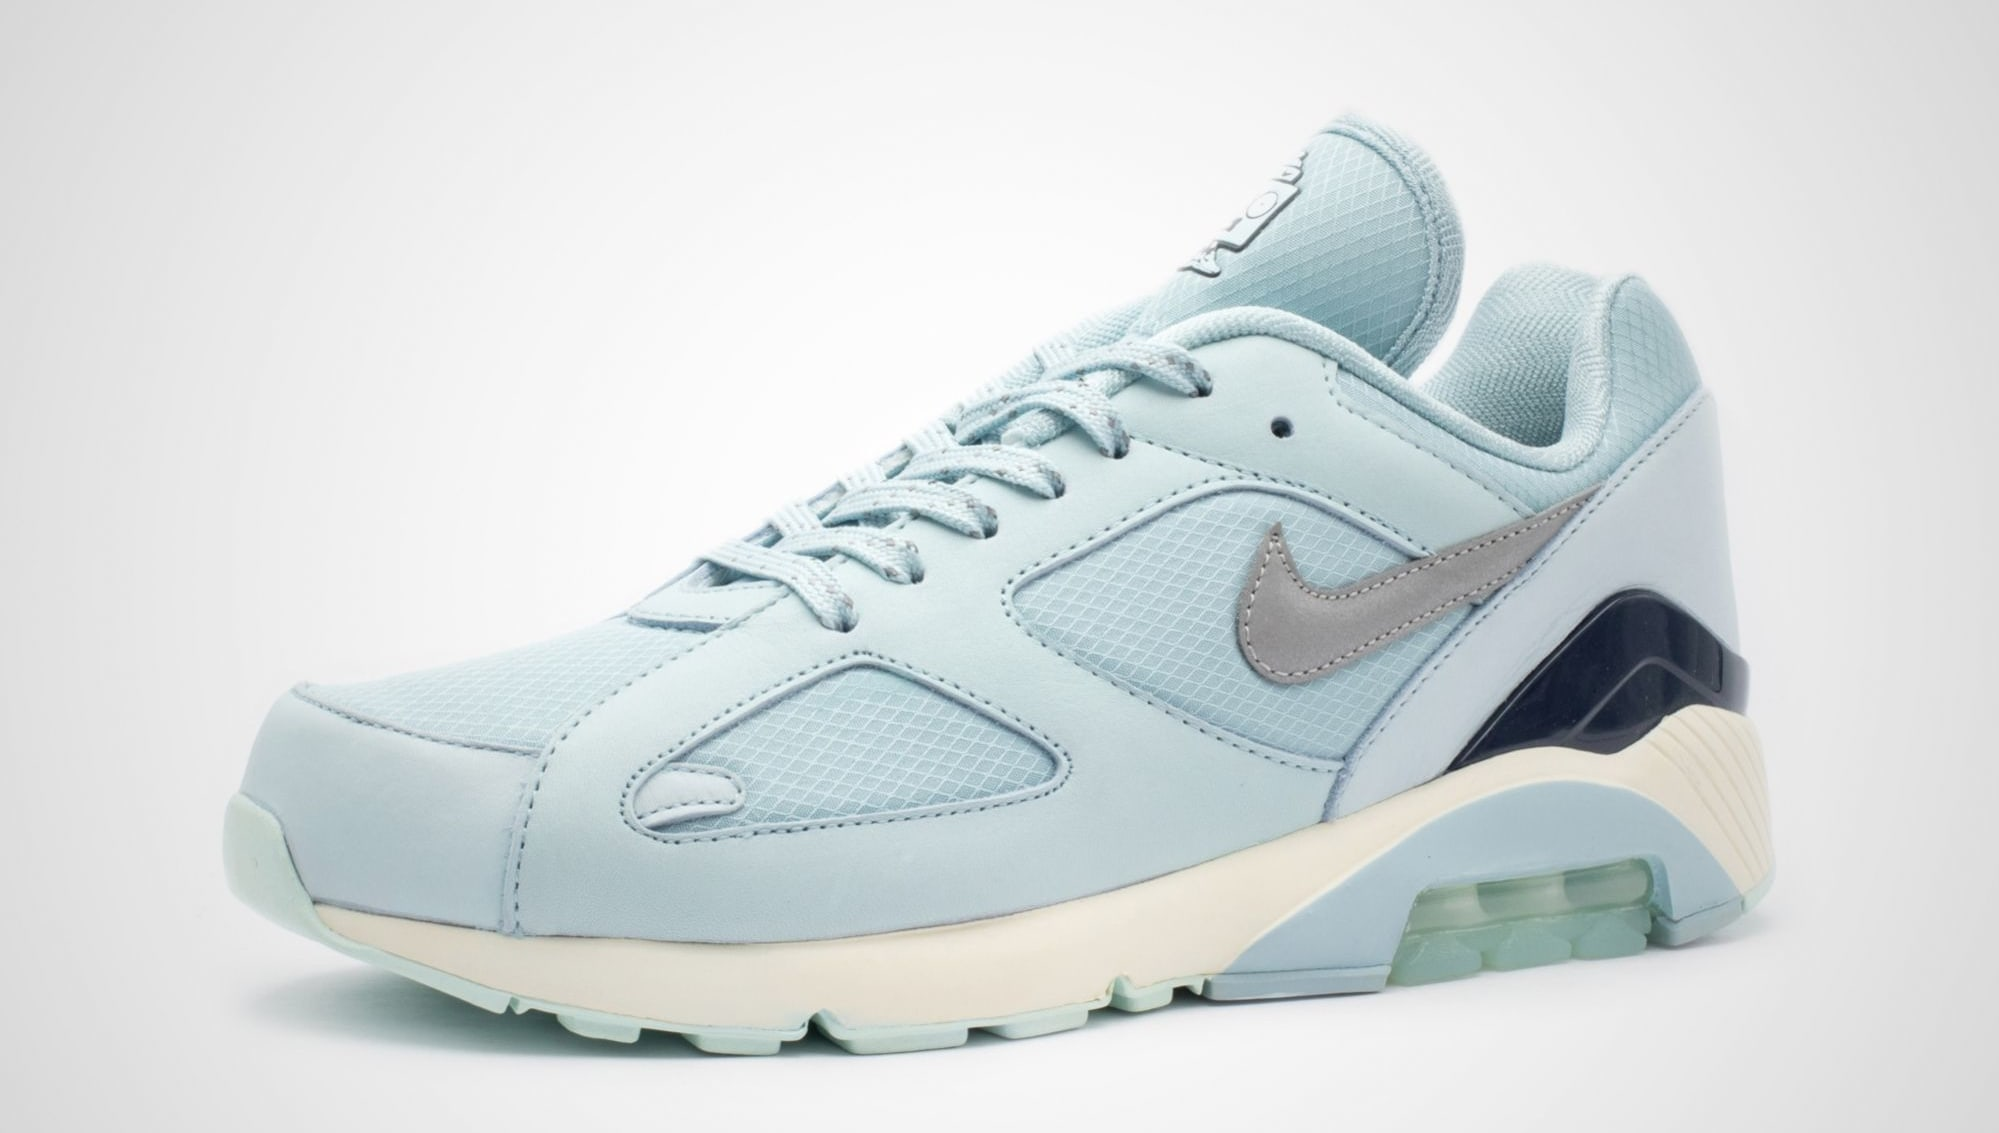 3e8faa3b922b coupon uk outlet nike air max 90 hyperfuse prm 2014 25 anniversary mens  shoes ice green nwnzb3ol 03a6c 28de2  sale unreleased kanye air max 180  hyperfuse ...